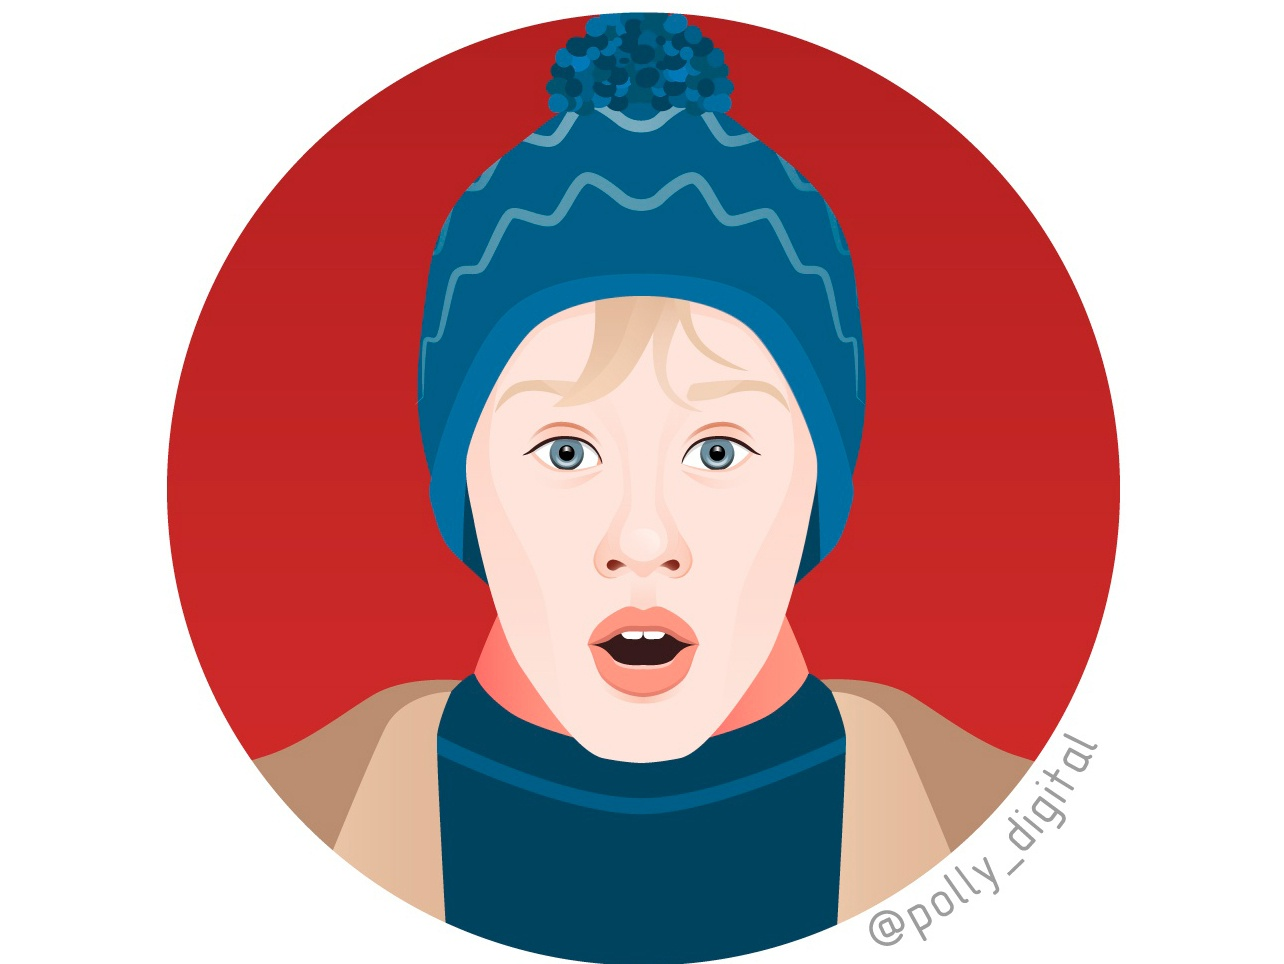 Macaulay Culkin, Home alone web artist home alone macaulay culkin actor portait illustrator illistration digital art vectorportrait vector art vector